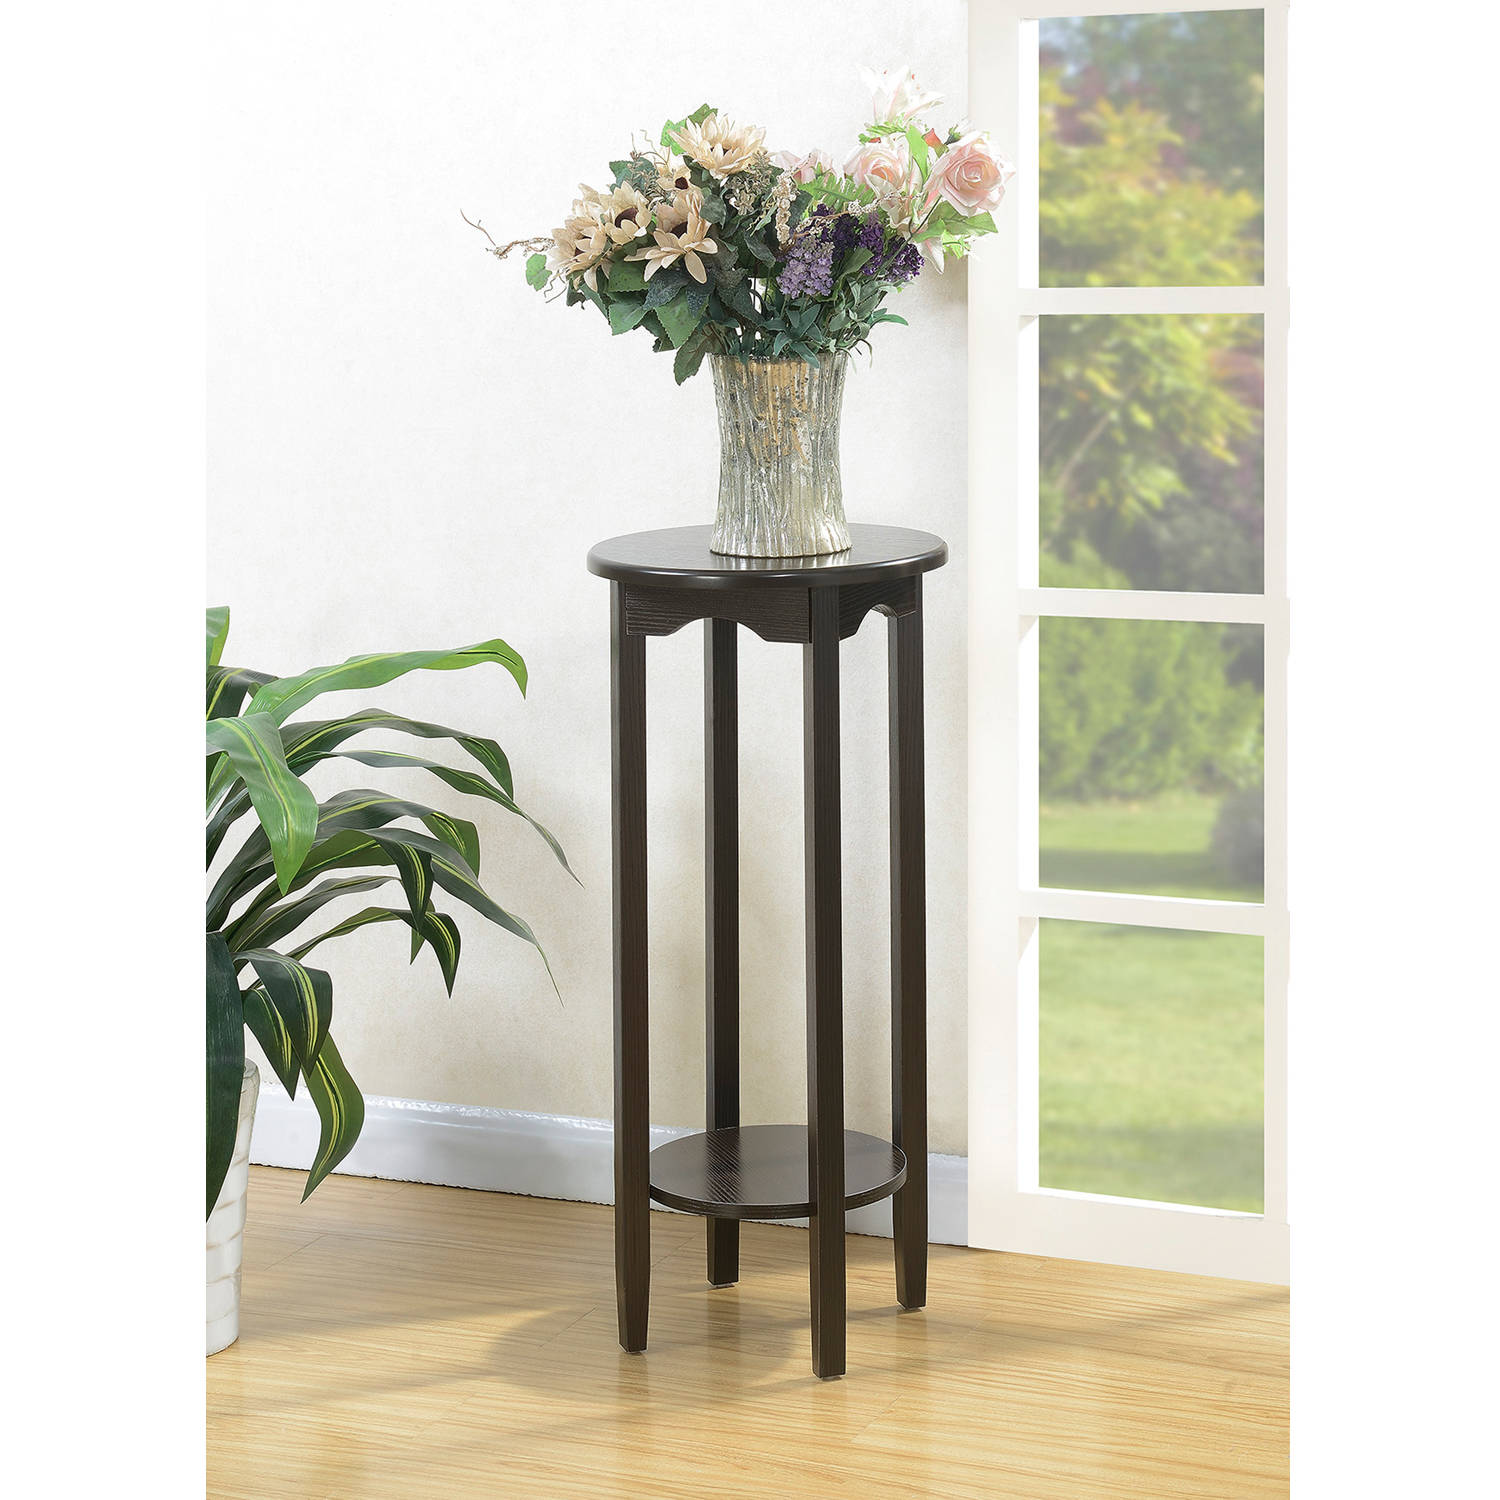 "Convenience Concepts American Heritage 31"" Round Plant Stand by CONVENIENCE CONCEPTS, INC"